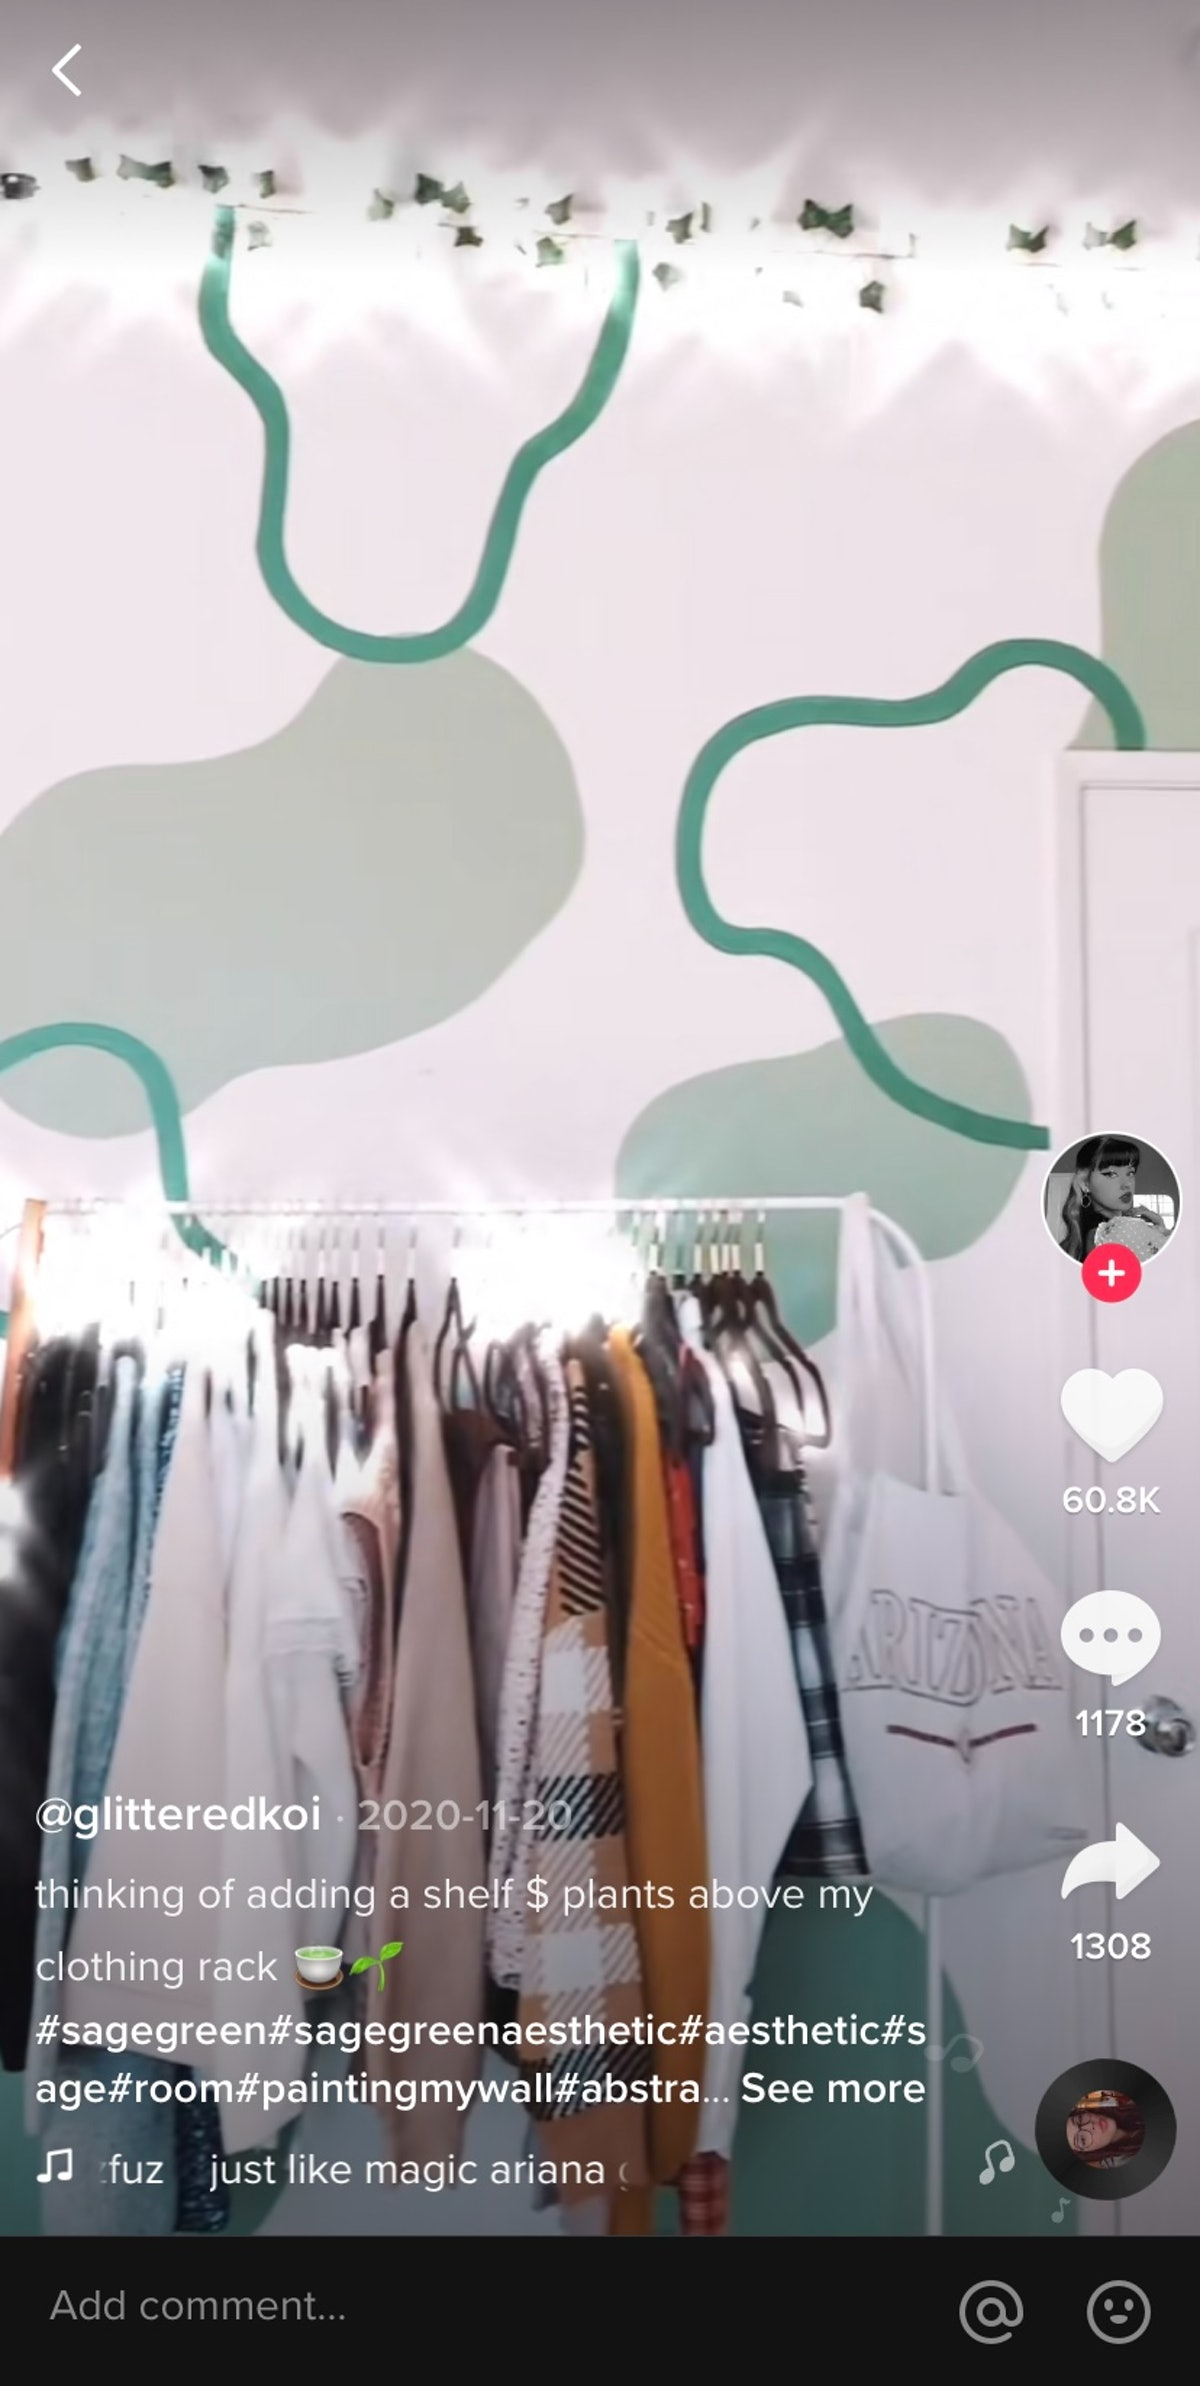 A TikTok user paints sage and forest green designs on their bedroom walls.